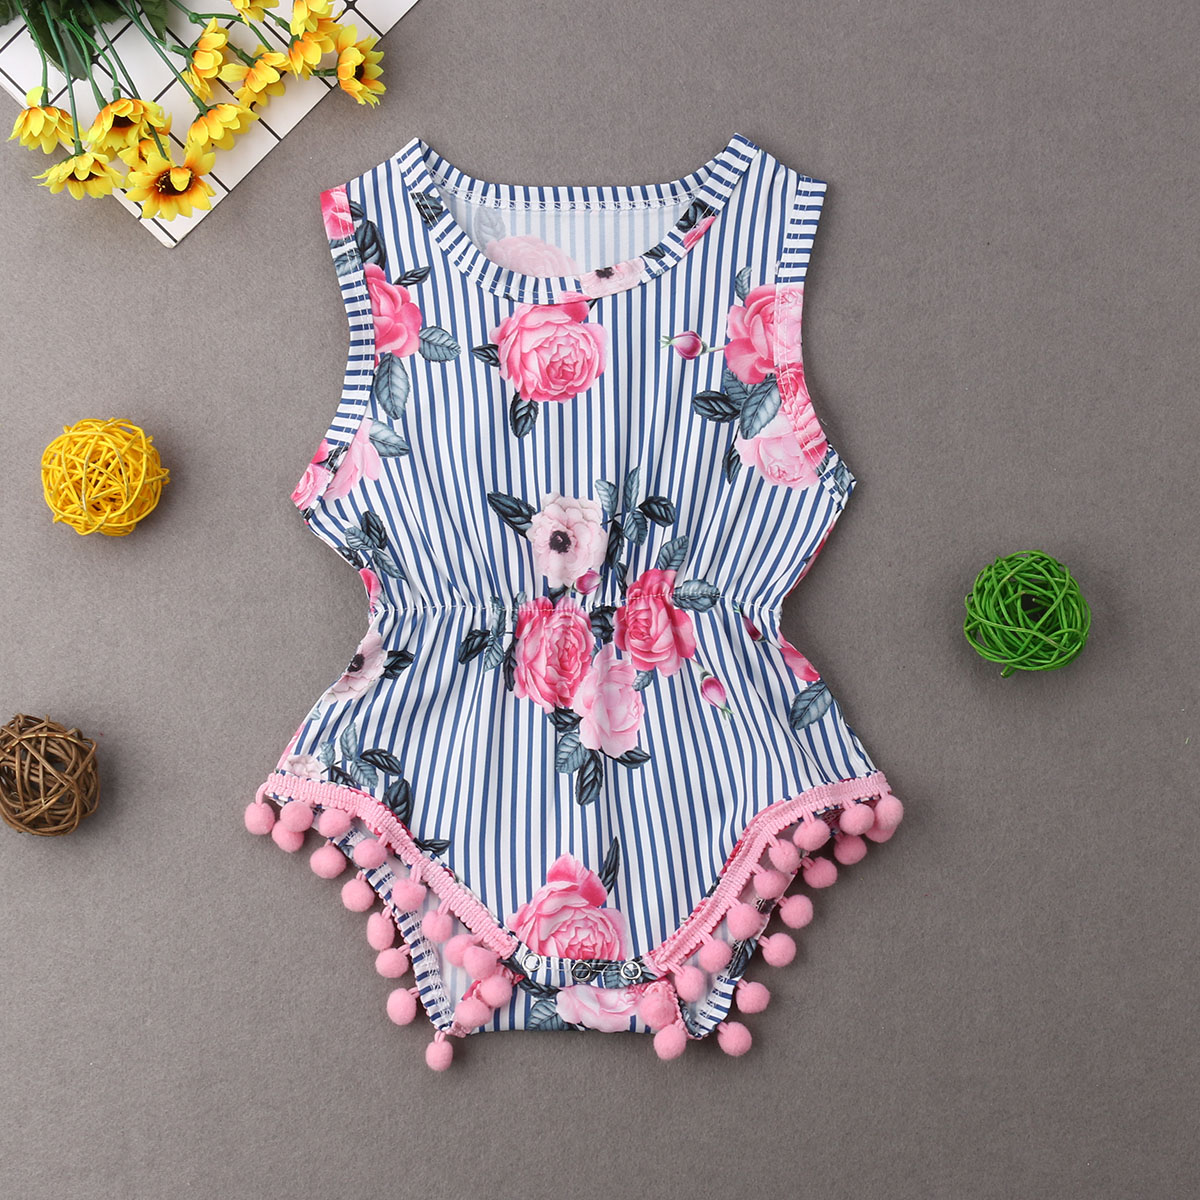 Pudcoco Girl Jumpsuits 0-18M US Newborn Kid Baby Girls Floral Romper Jumpsuit Outfit Sunsuit Clothes